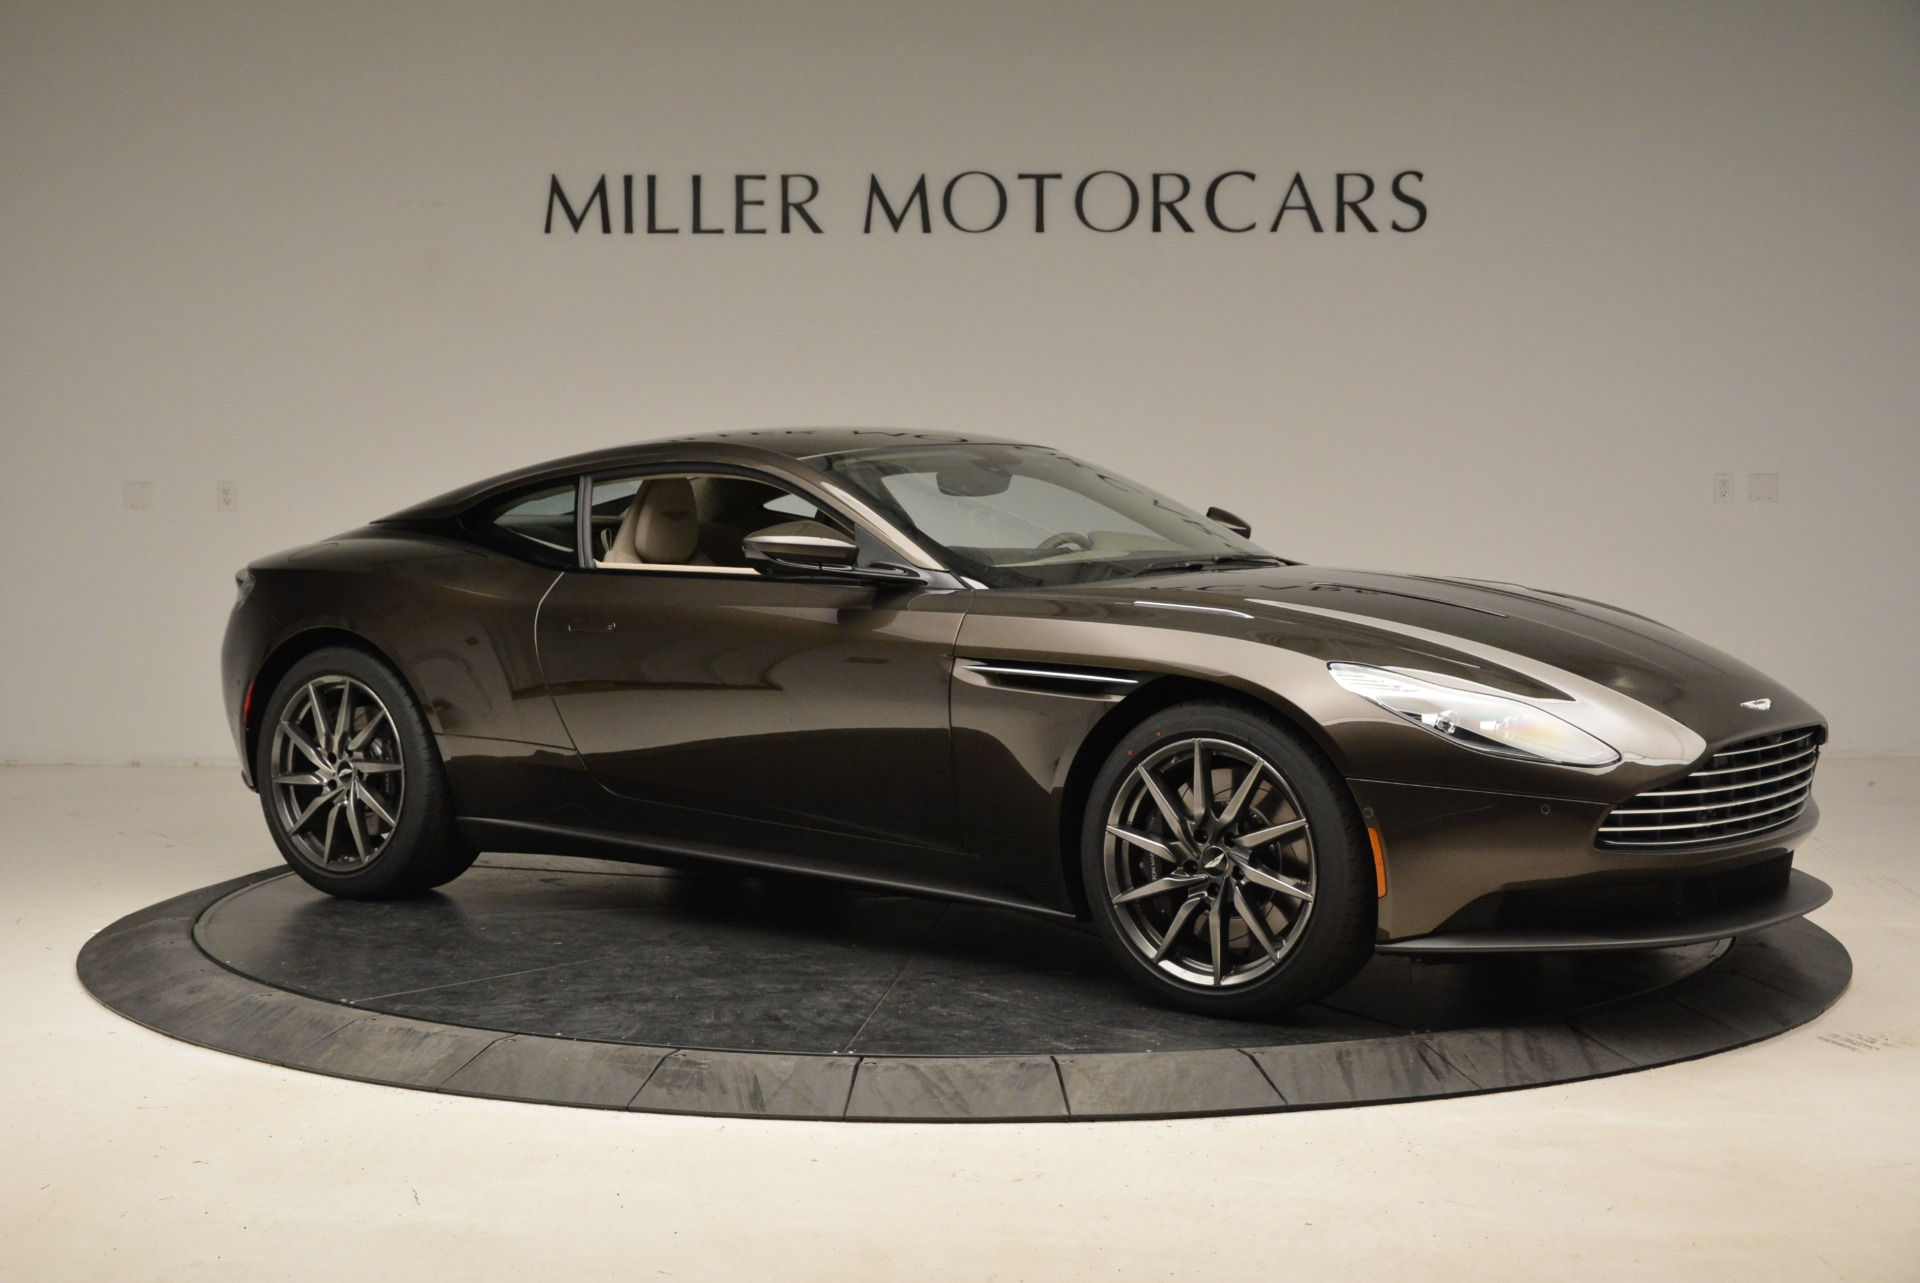 New 2018 Aston Martin DB11 V12 For Sale In Westport, CT 1904_p10